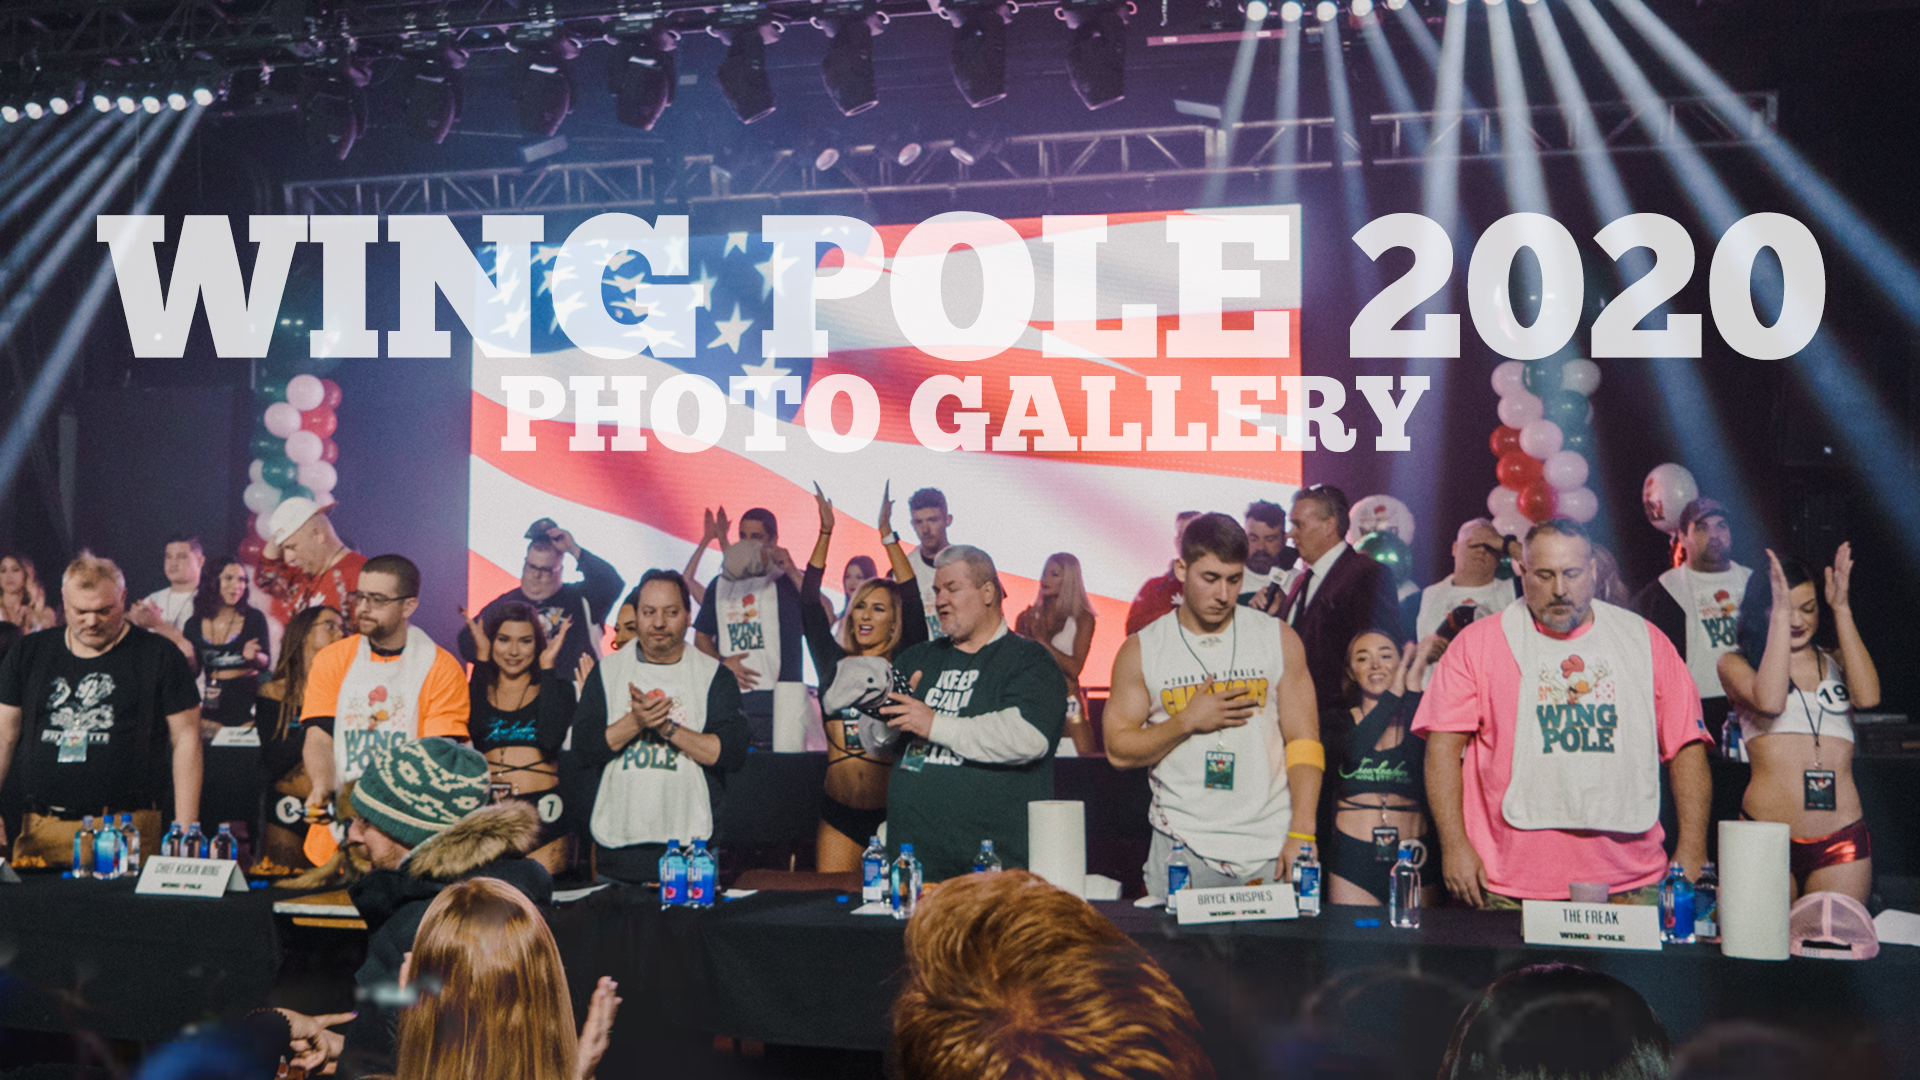 Wing Pole 2020 Photo Gallery